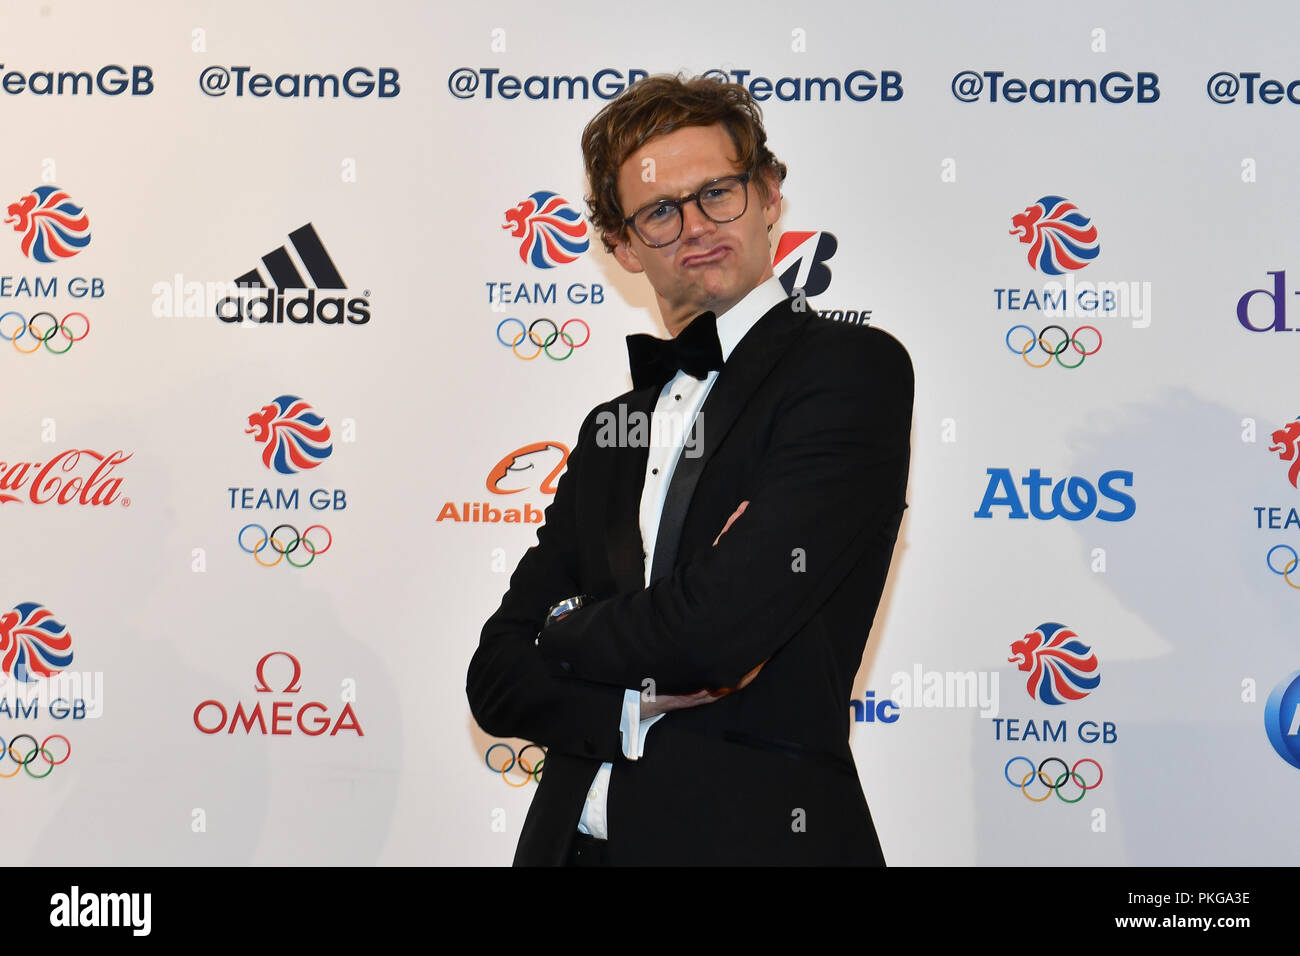 London, UK. 13th September 2018. Event Host, Mark Dolan arrives for the Team GB Ball 2018 on Thursday, September 13, 2018, at the Royal Horticultural Halls, LONDON ENGLAND. Credit: Taka Wu/Alamy Live News - Stock Image